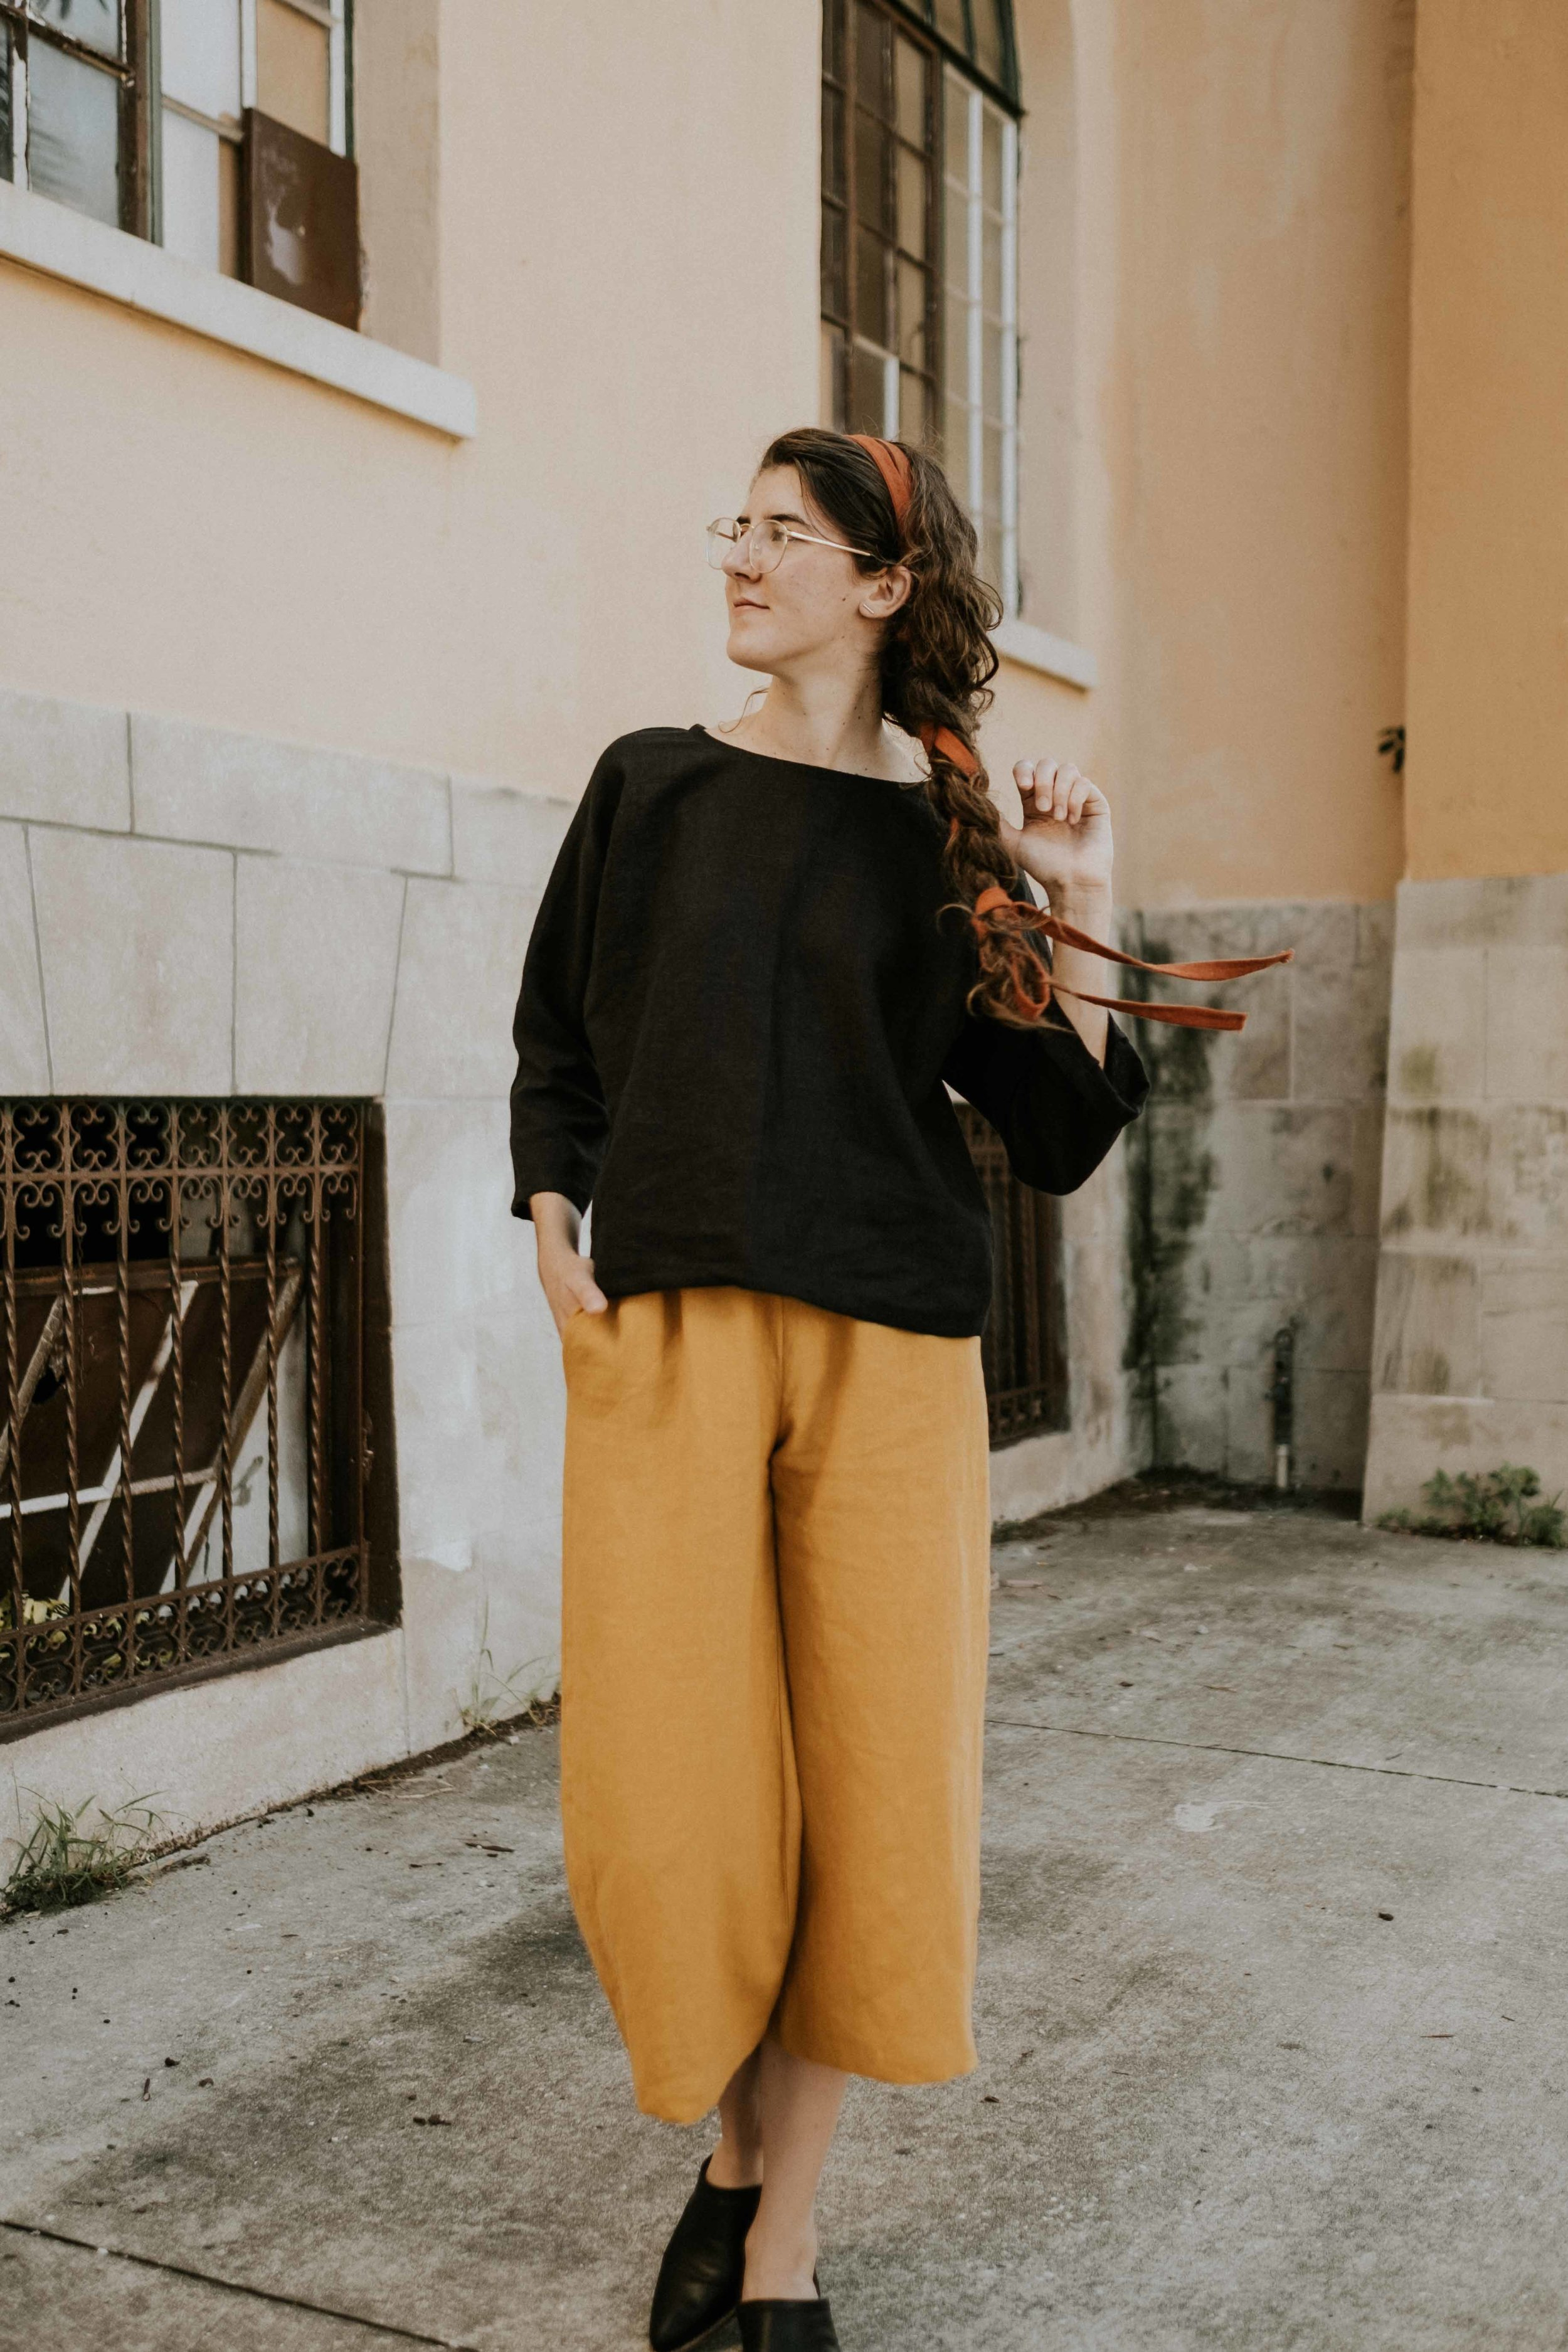 Amanda modeling the Gabriella Three-Quarter Sleeve Top in black linen and the Gloria Wide Leg Pant in golden linen